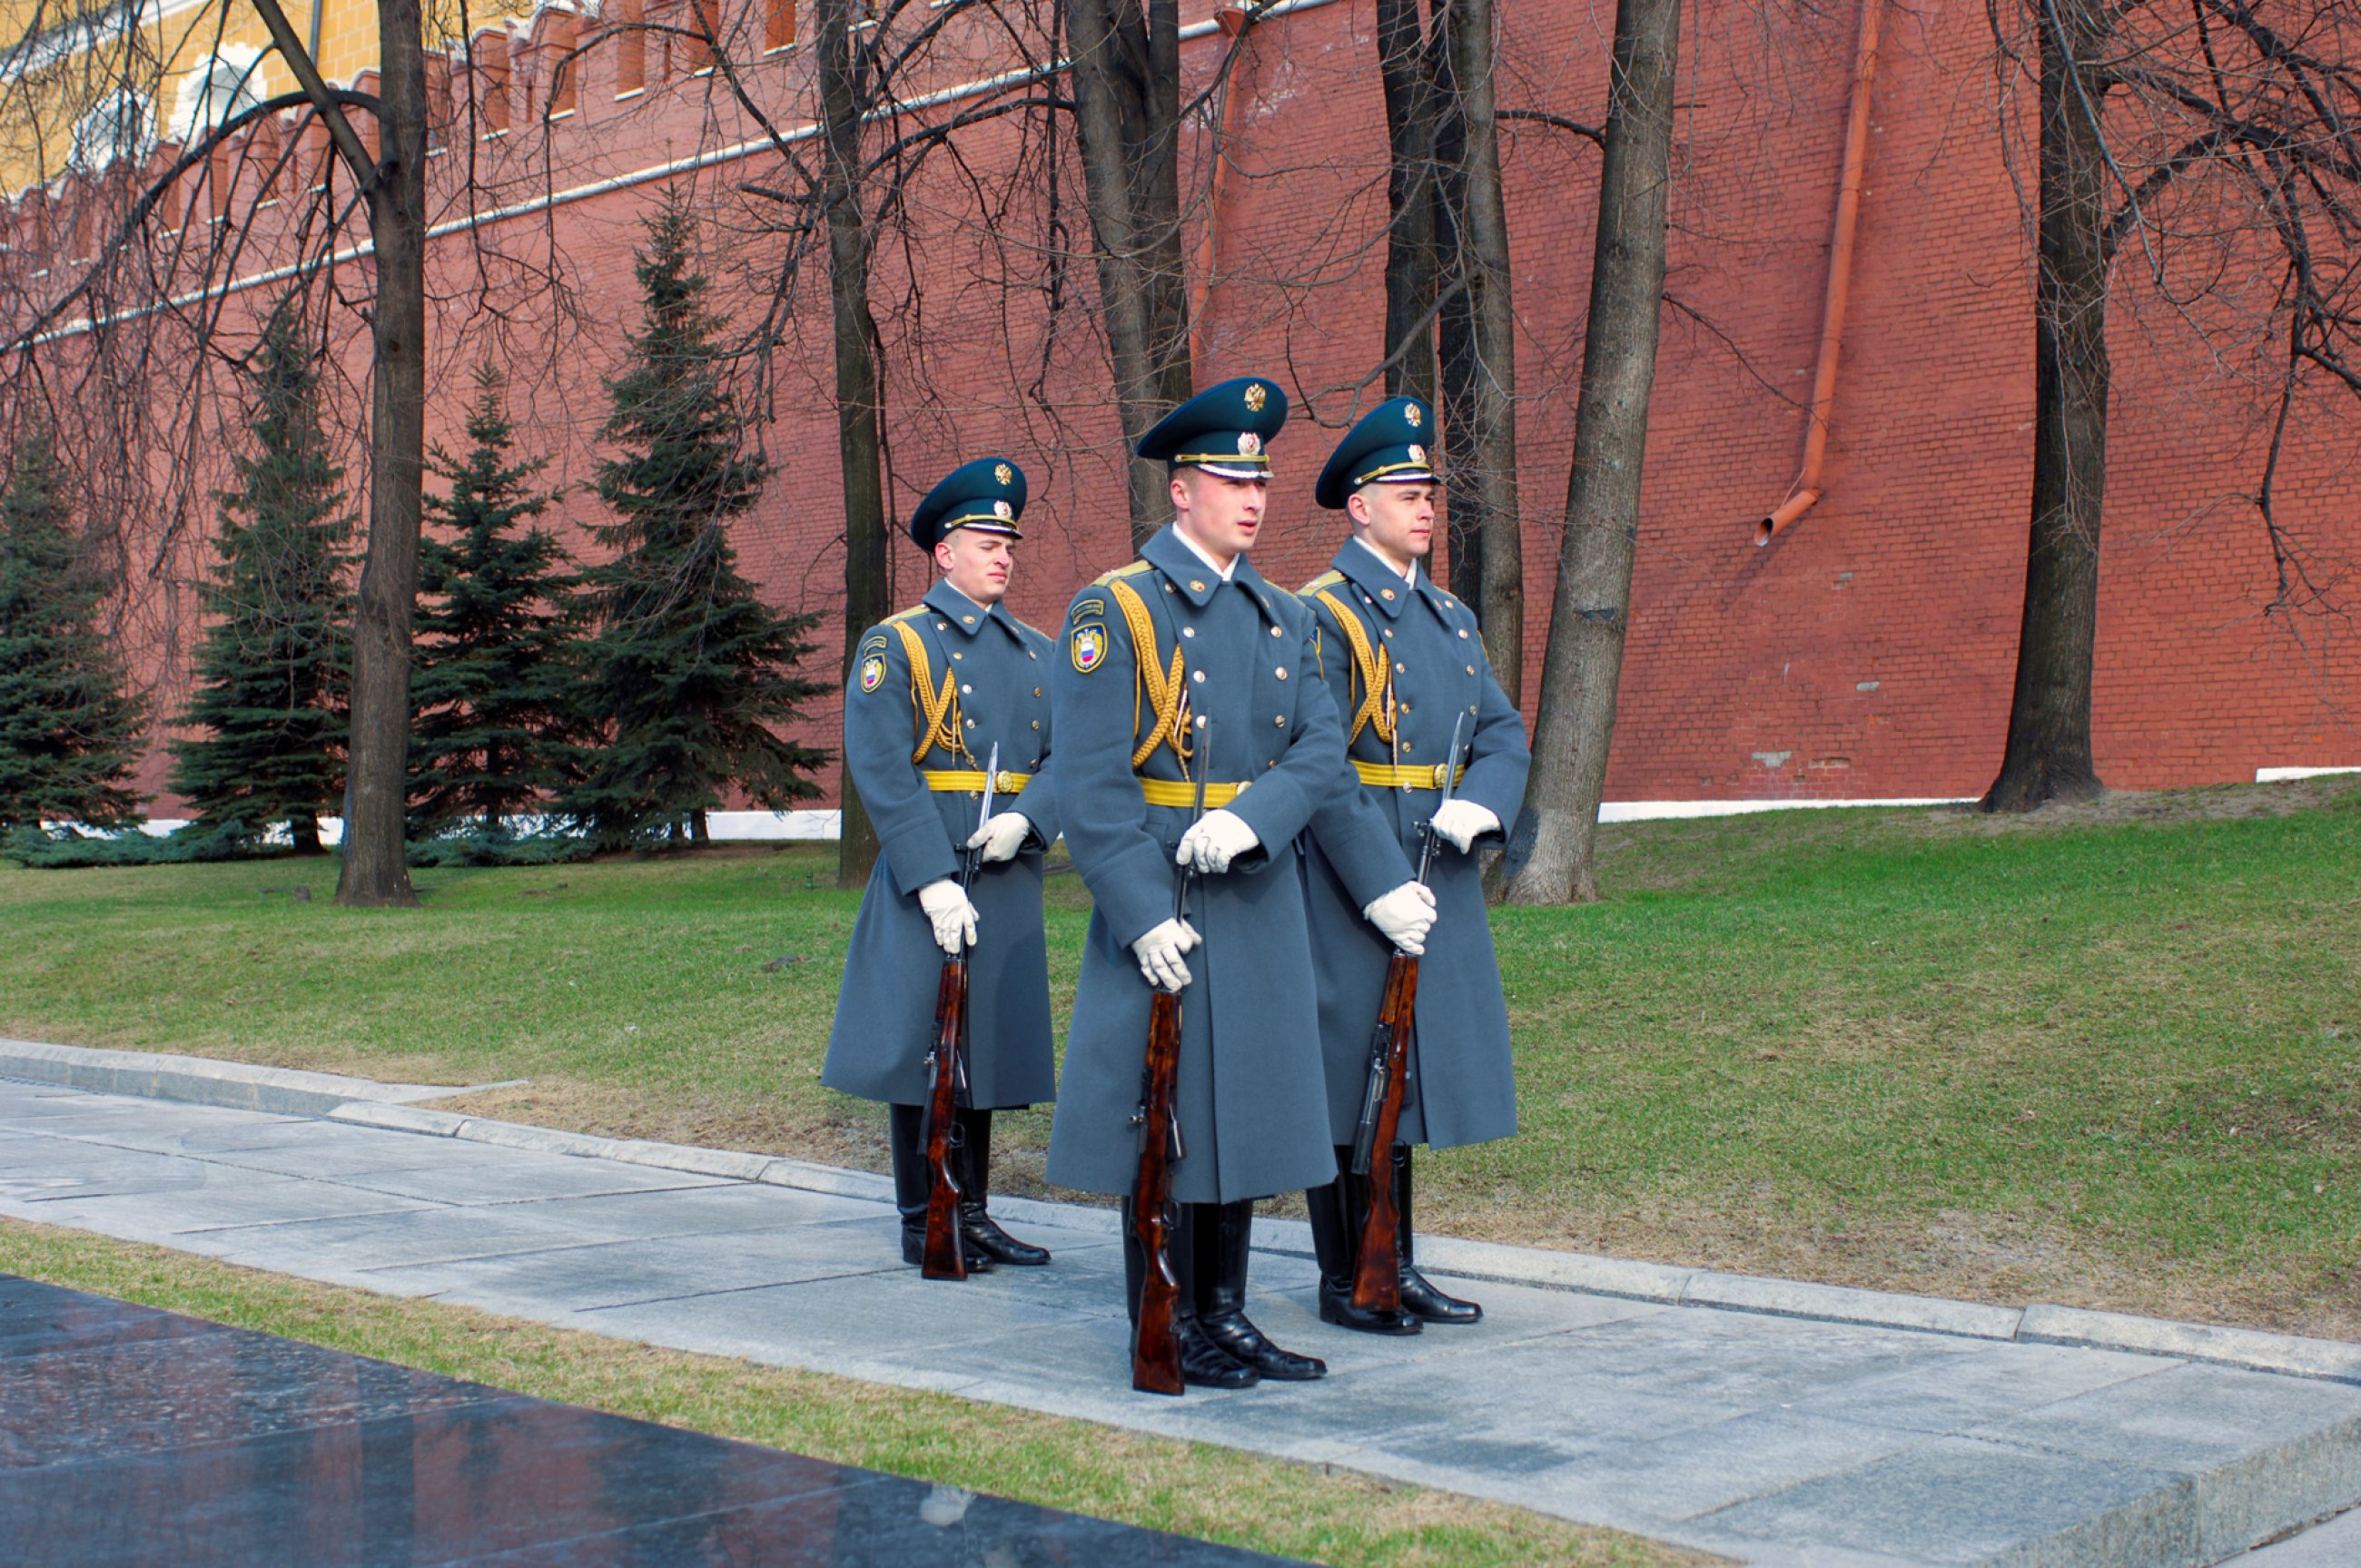 https://bubo.sk/uploads/galleries/16268/kremlin-regiment-changing-of-the-guard-moscow-2007-07.jpg